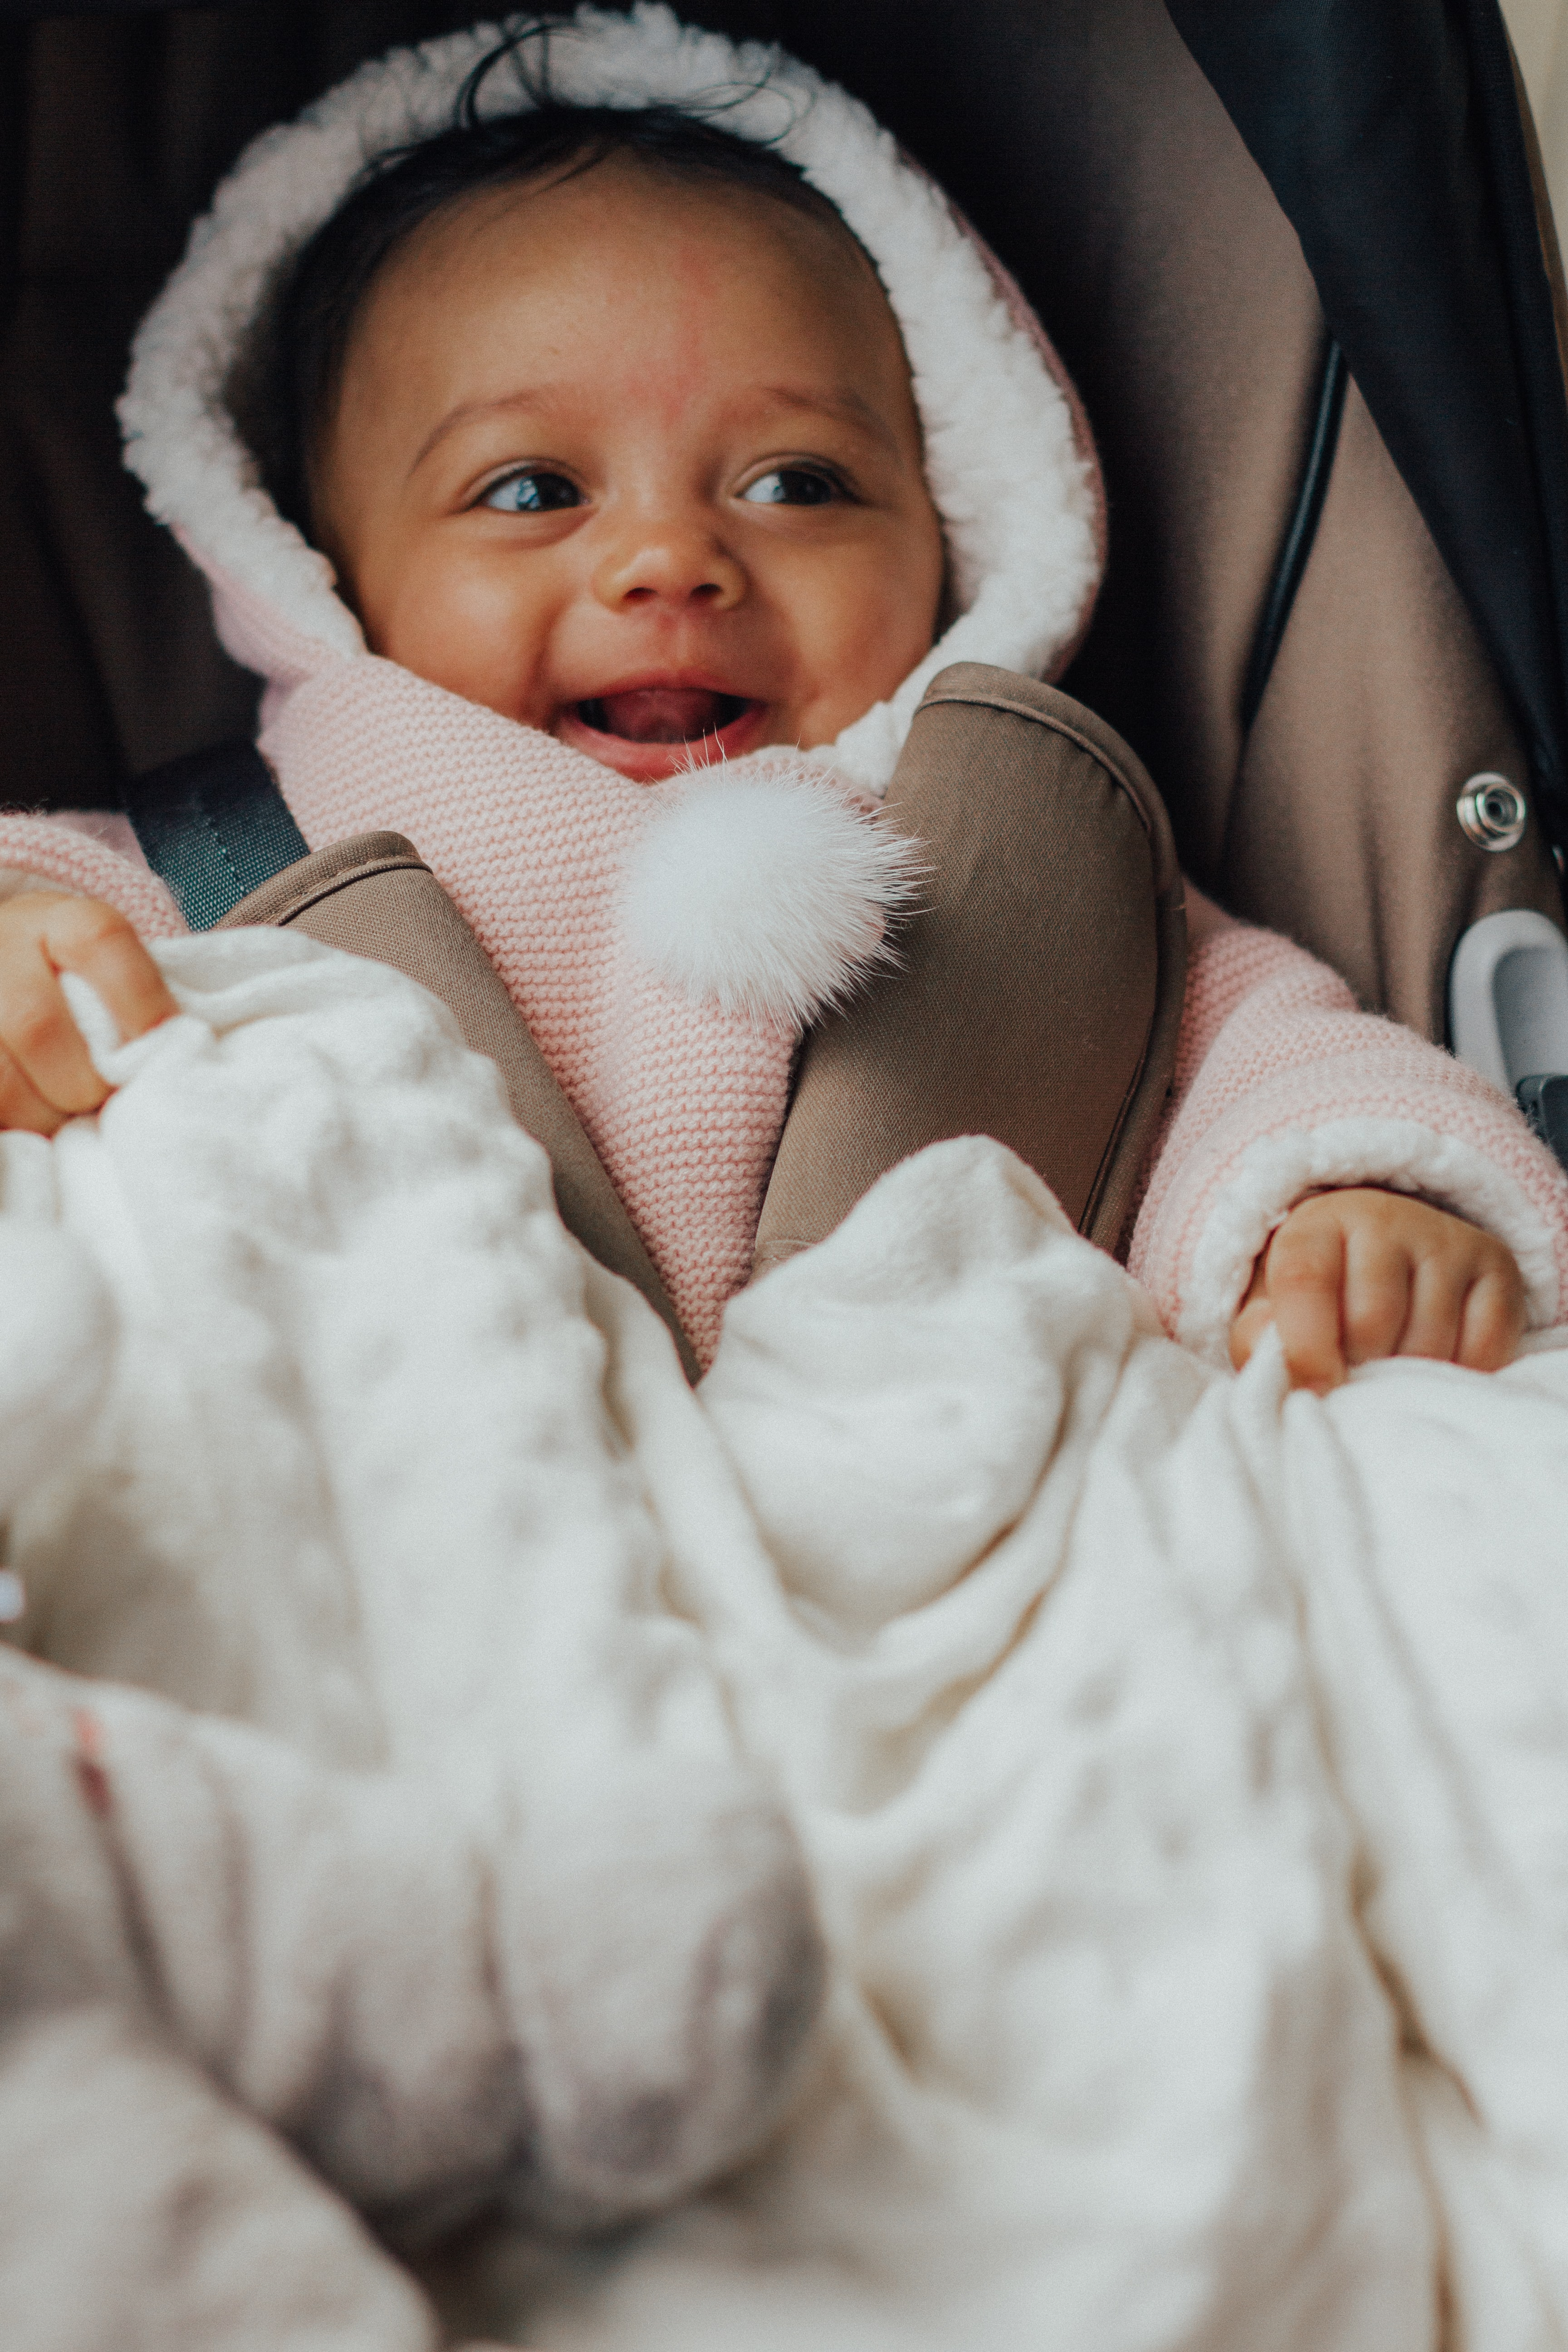 100+ baby girl pictures | download free images on unsplash